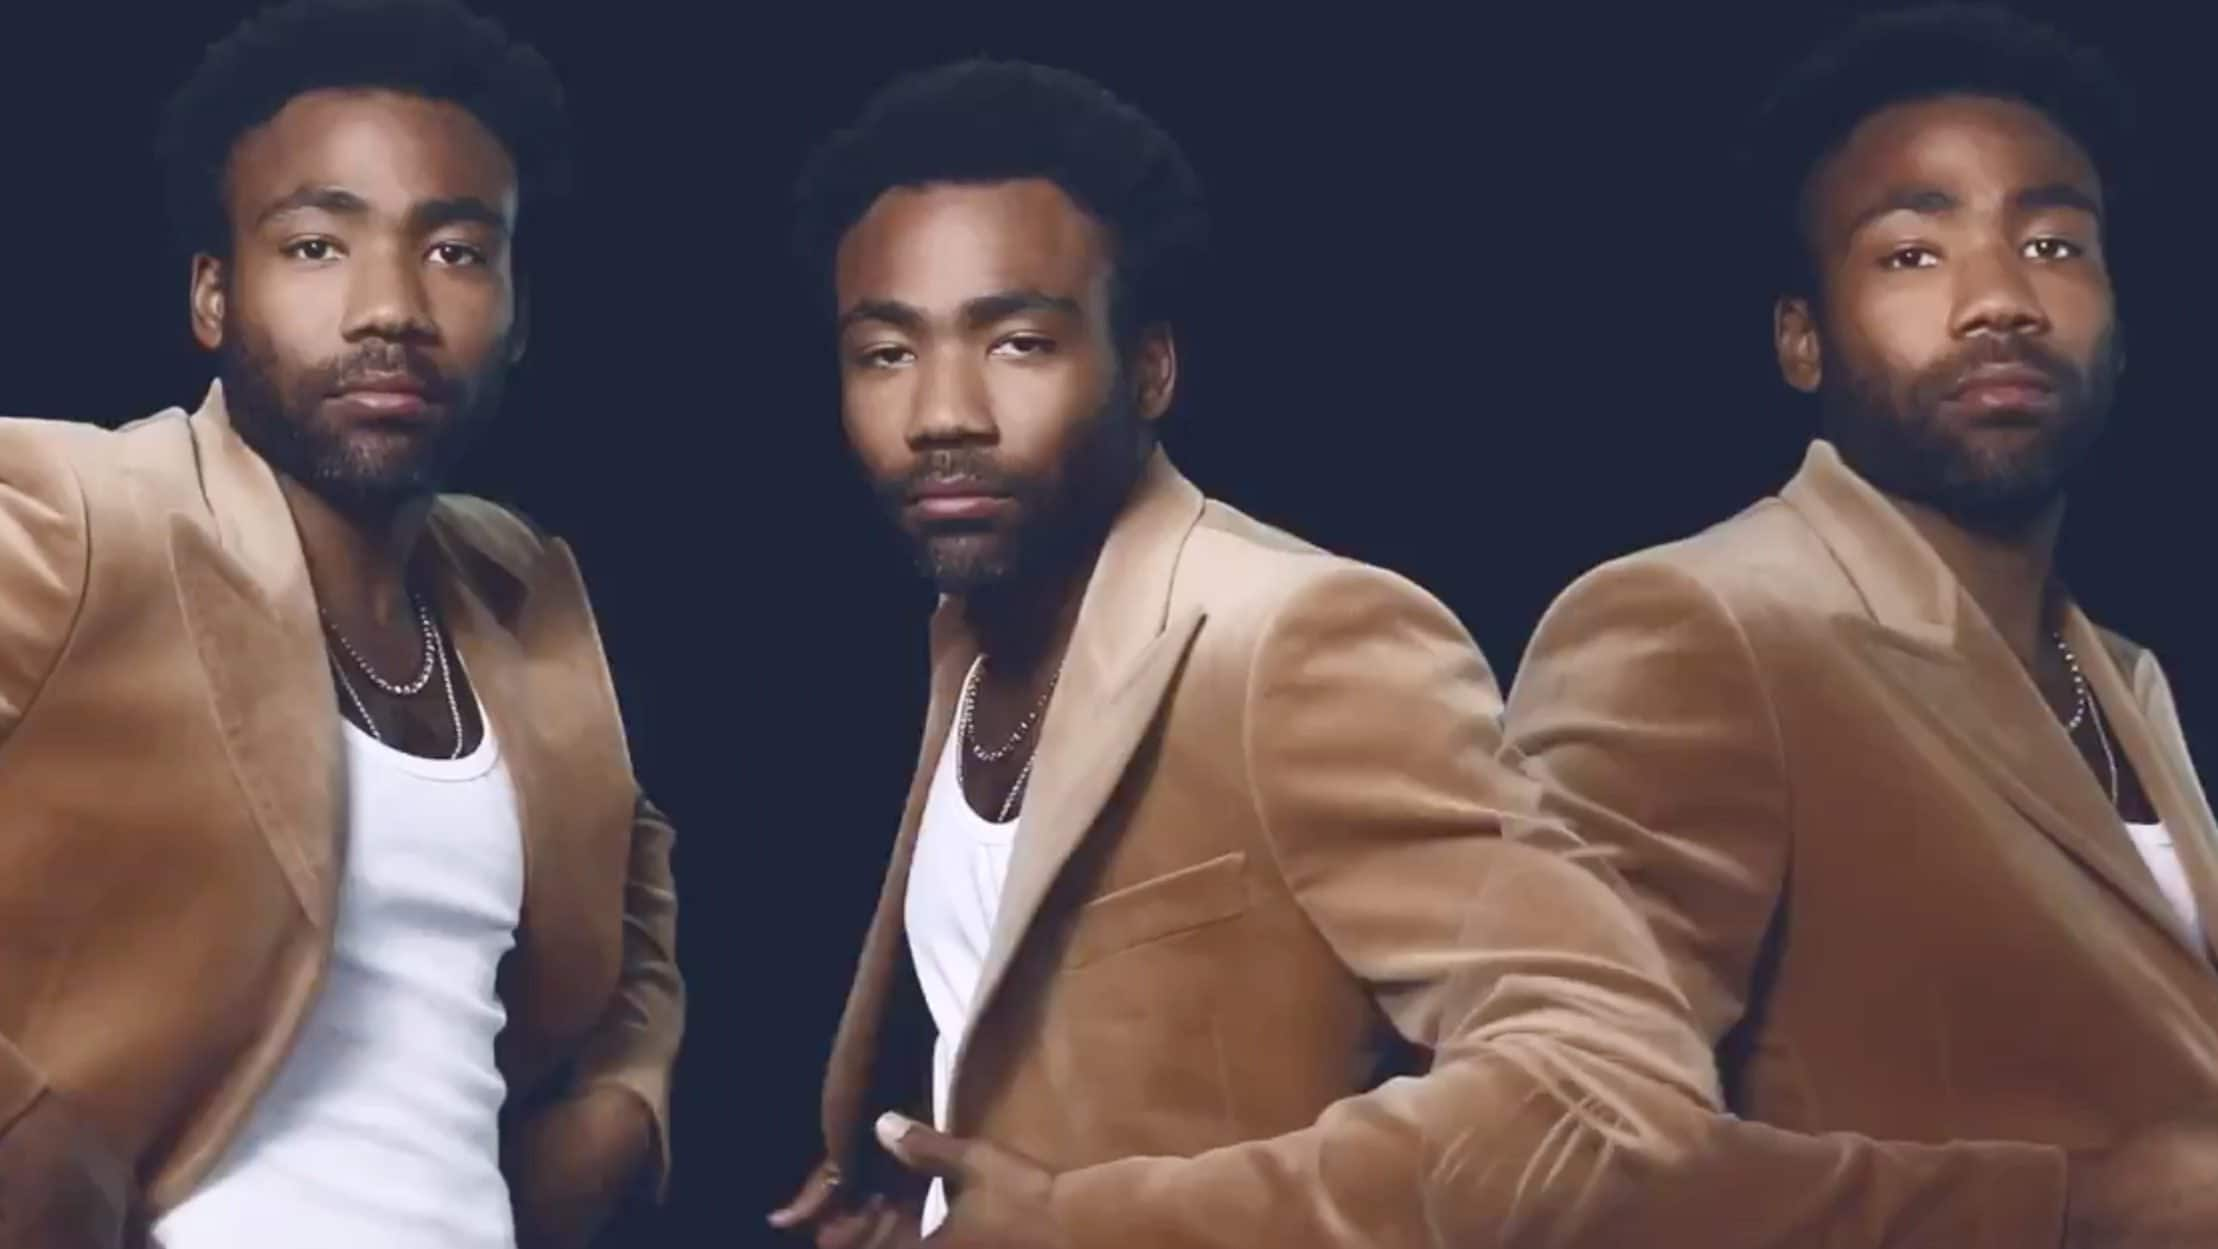 Childish Gambino drops new song 'This Is America'